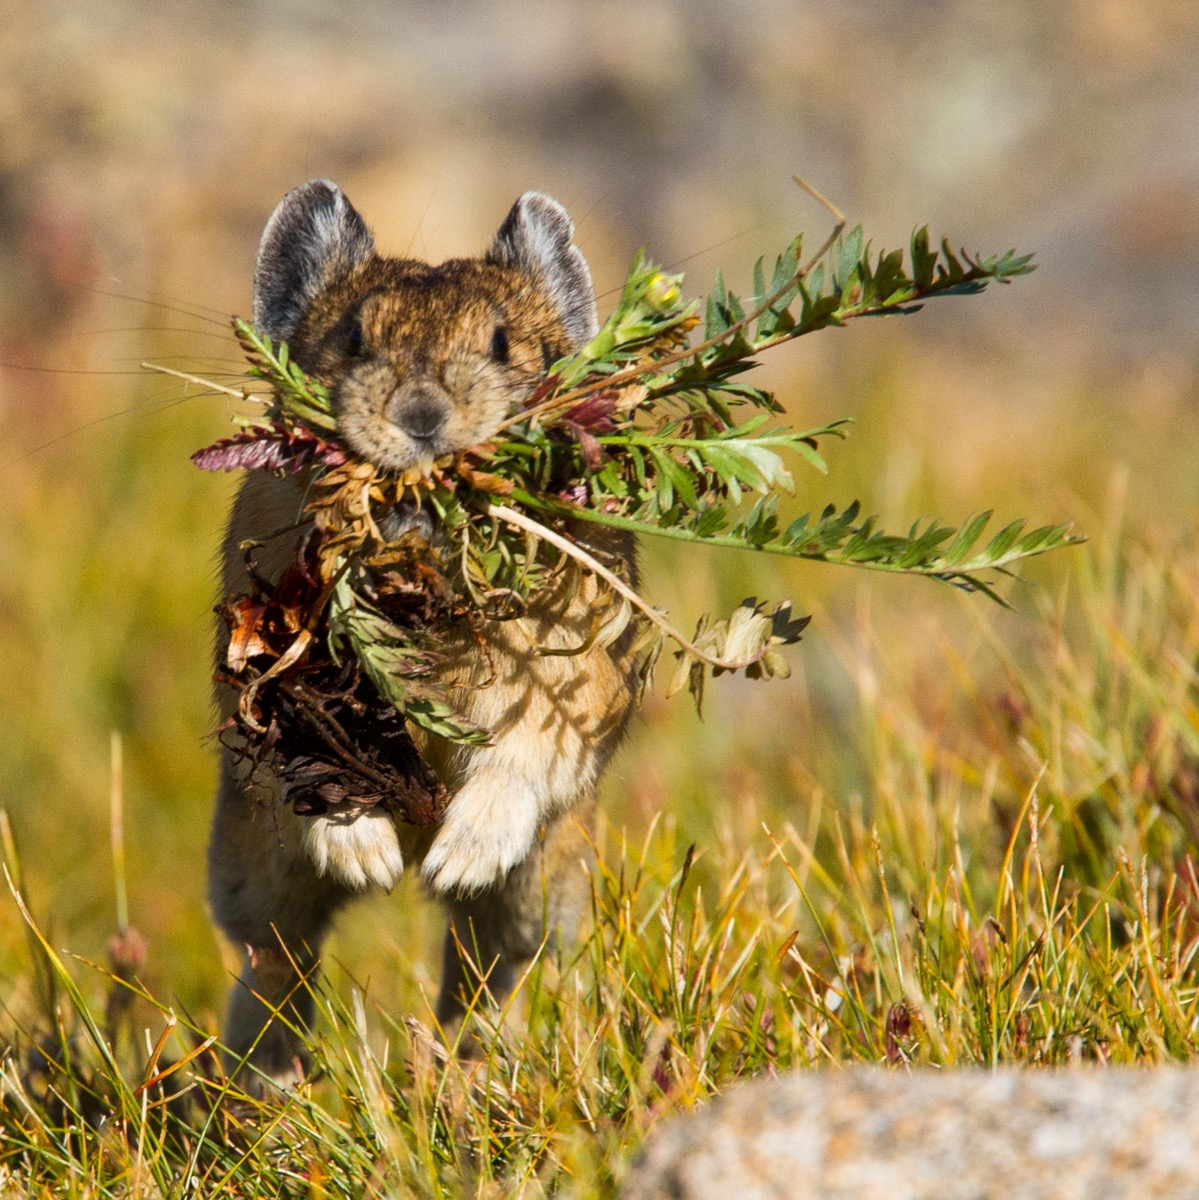 straight-on shot of a pika mid-leap running through golden grass with a mouthful of flowers and hay